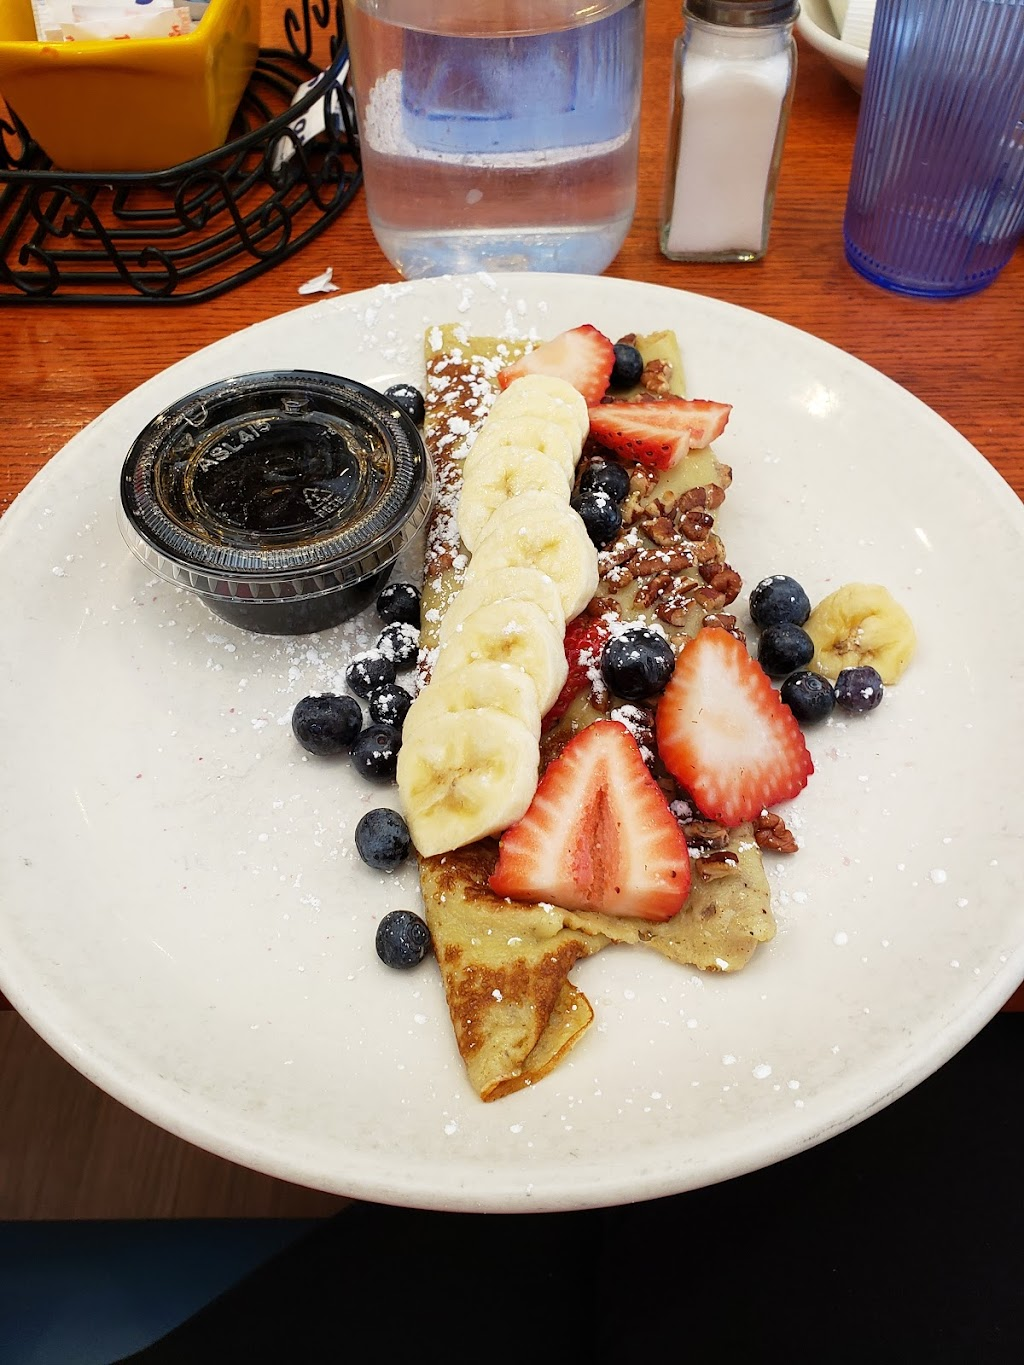 Blueberry Hill Breakfast Cafe - cafe    Photo 6 of 10   Address: 7340 IL-83, Darien, IL 60561, USA   Phone: (630) 734-1300